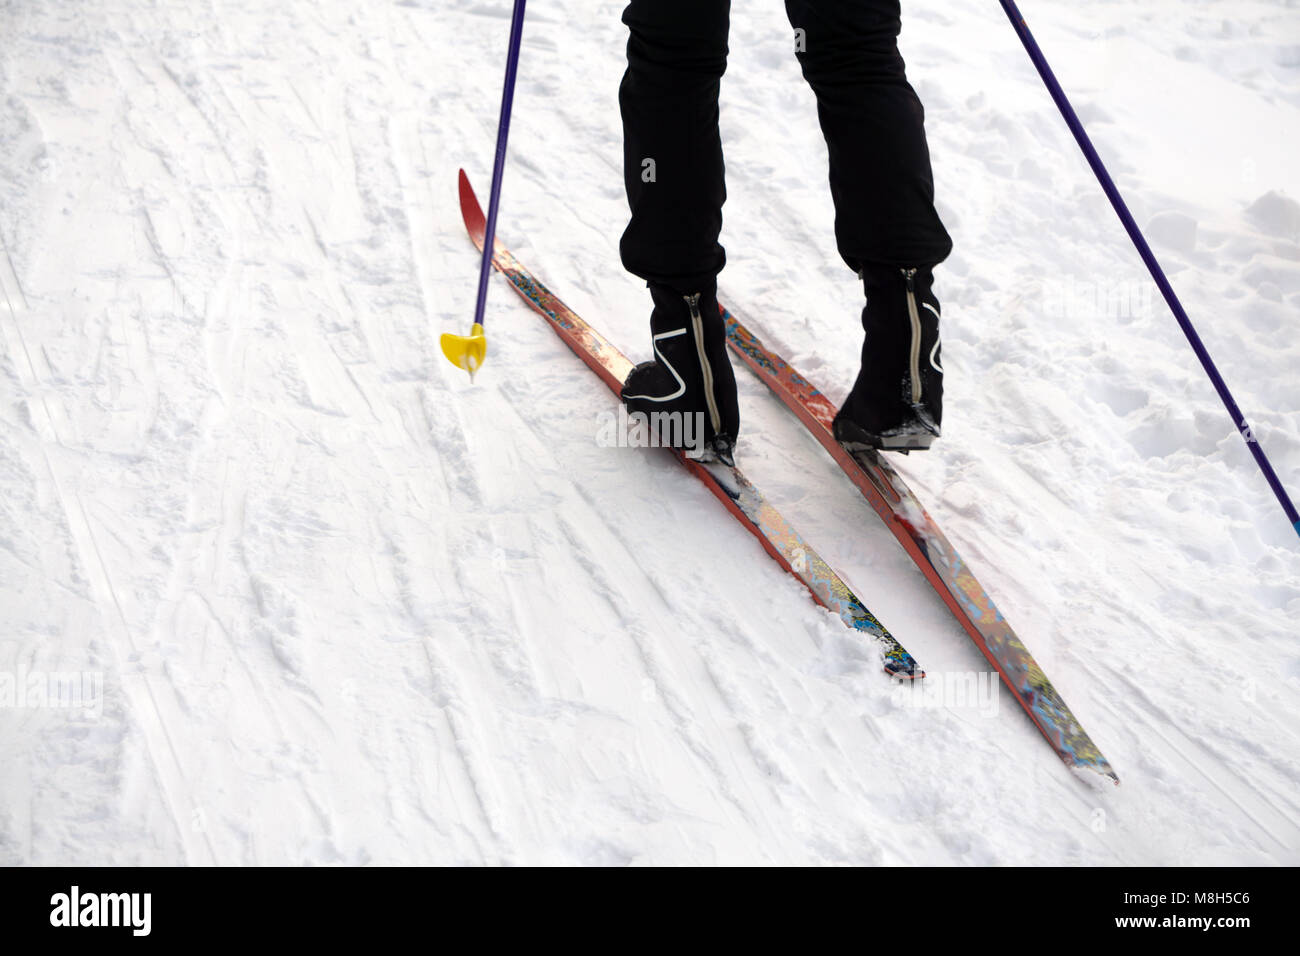 ski slope, skier in winter forest background . - Stock Image